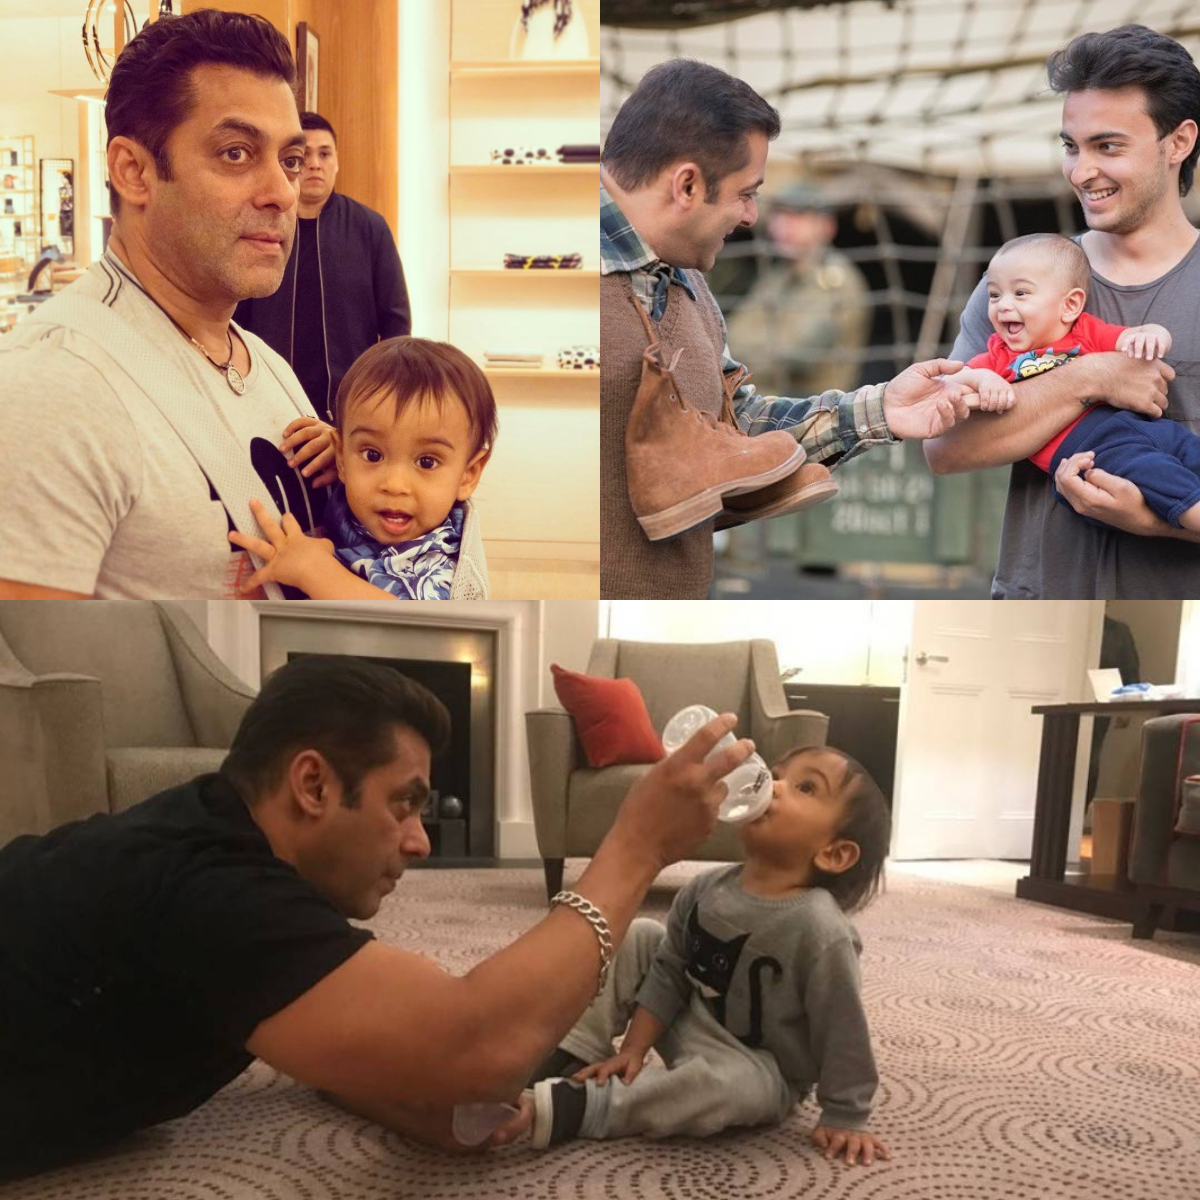 Salman and Ahil's moments